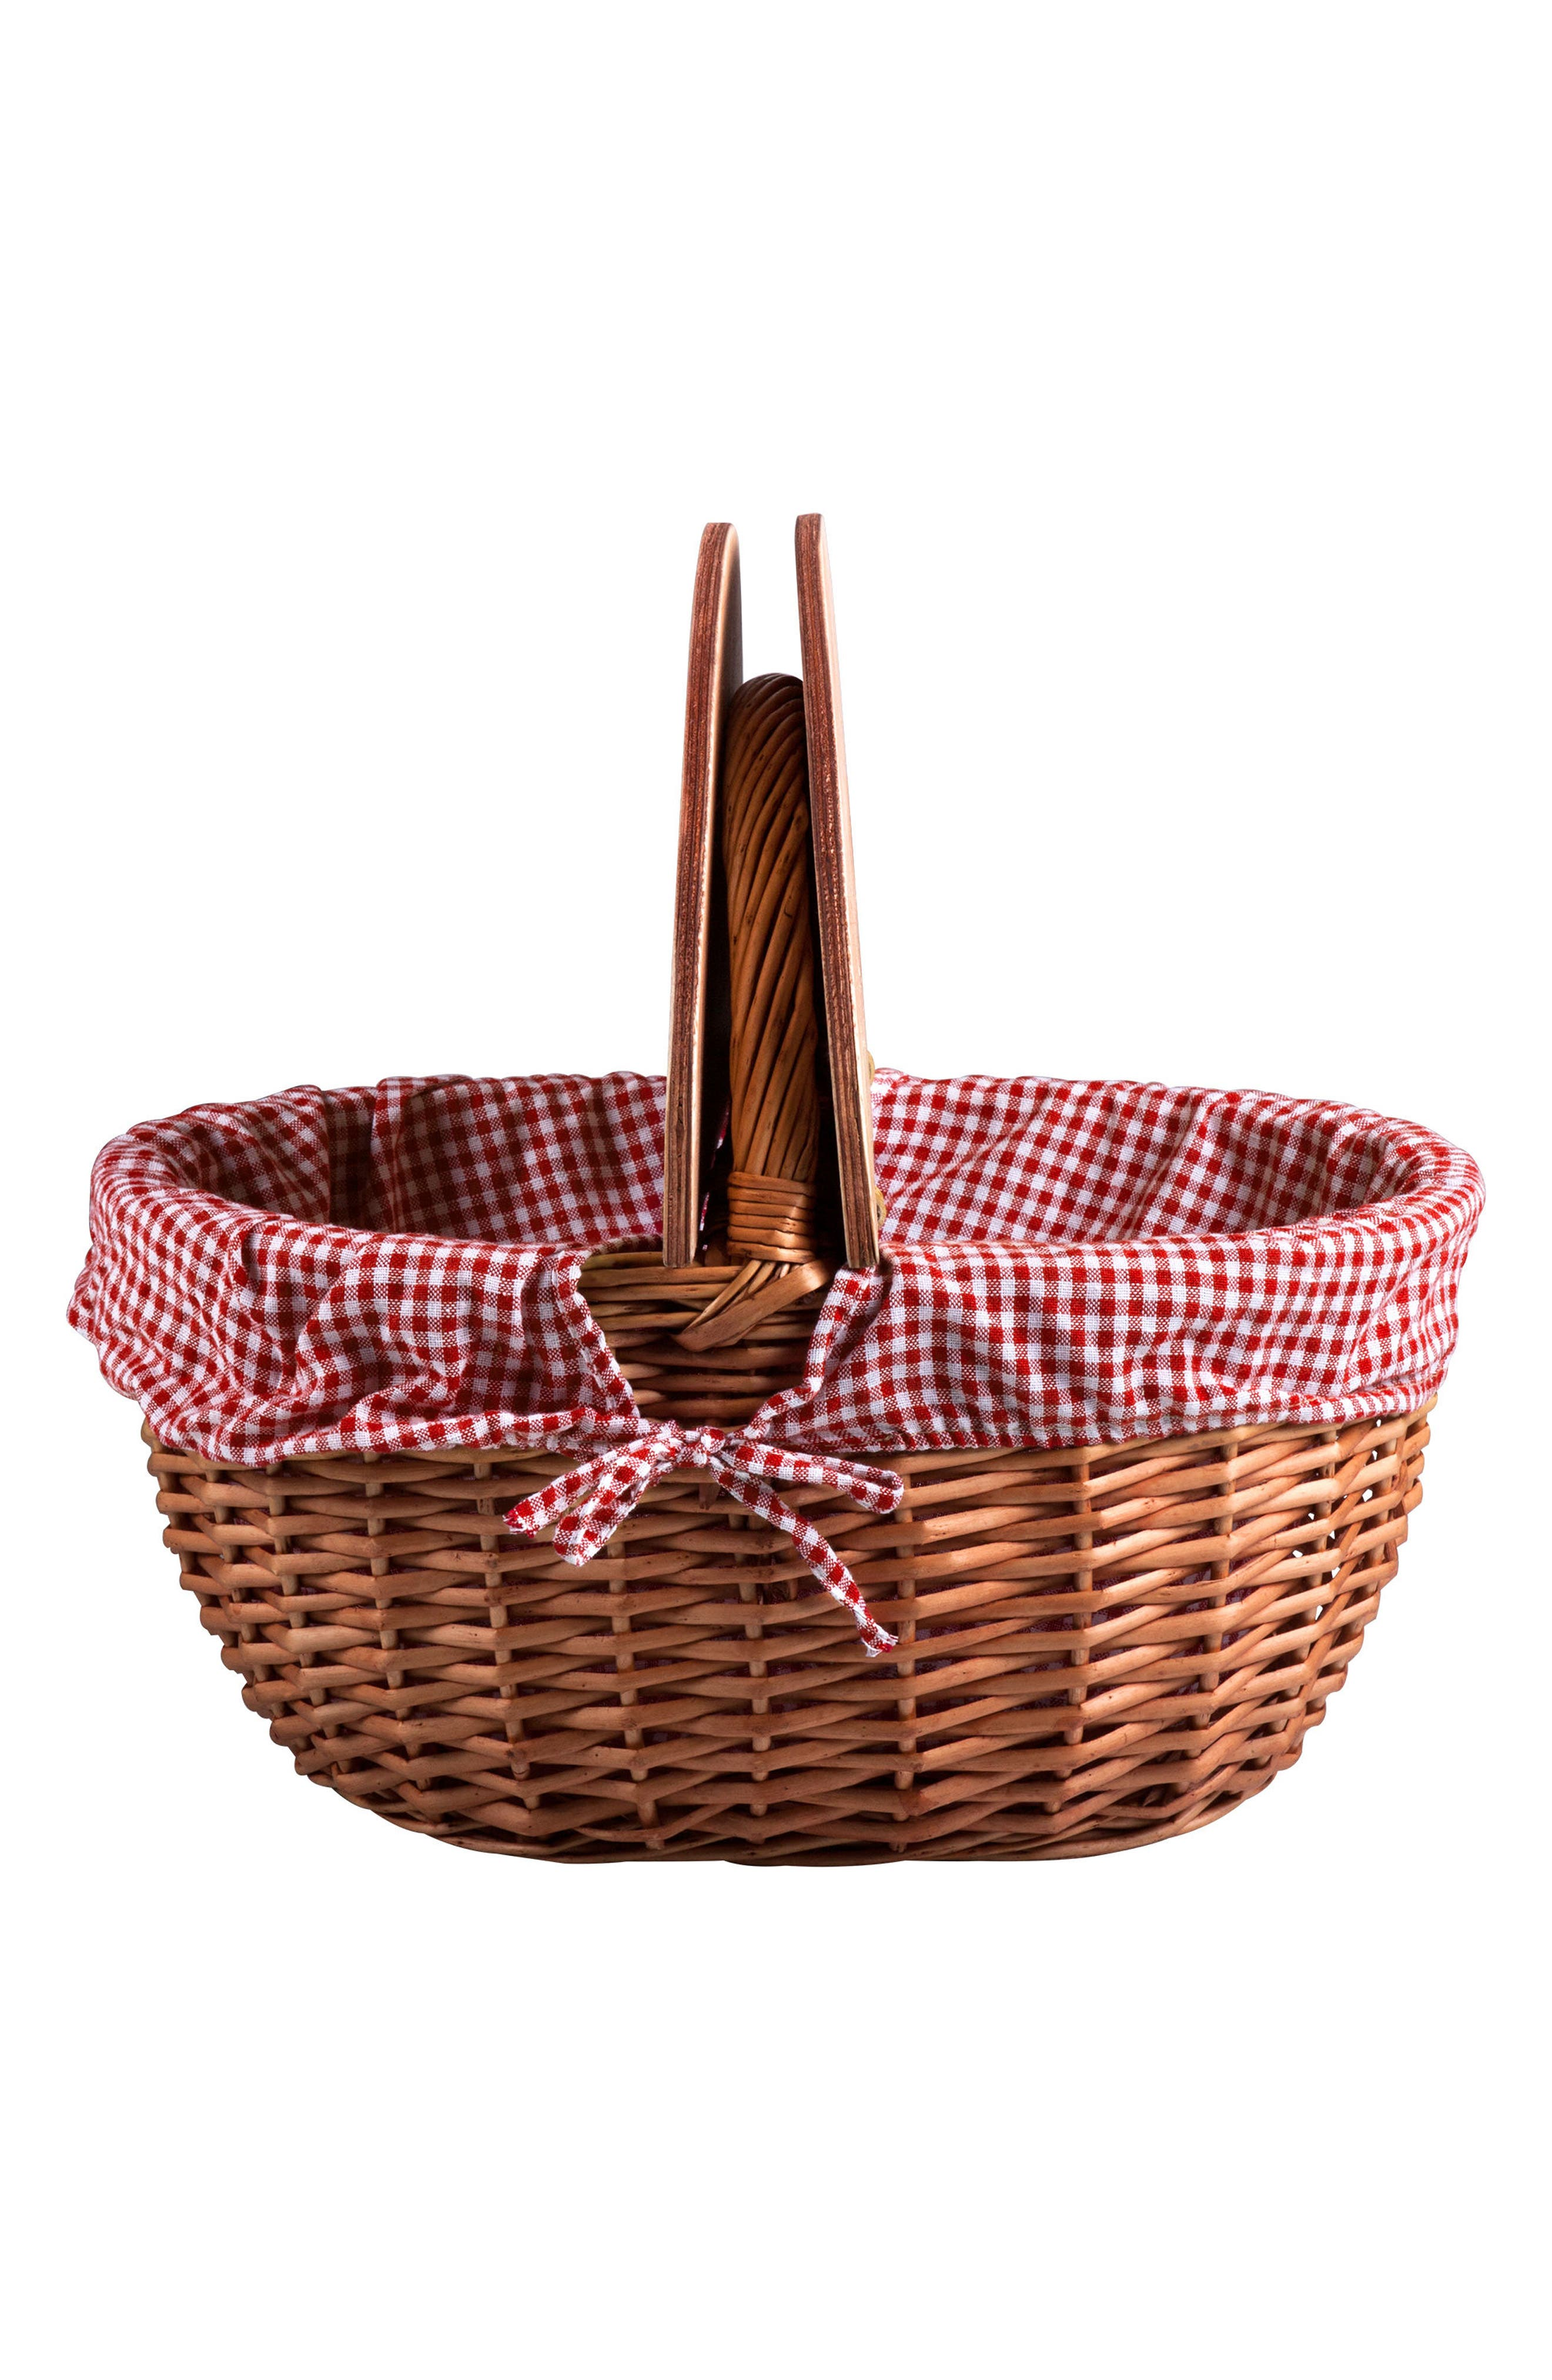 Country Wicker Picnic Basket,                             Alternate thumbnail 2, color,                             200